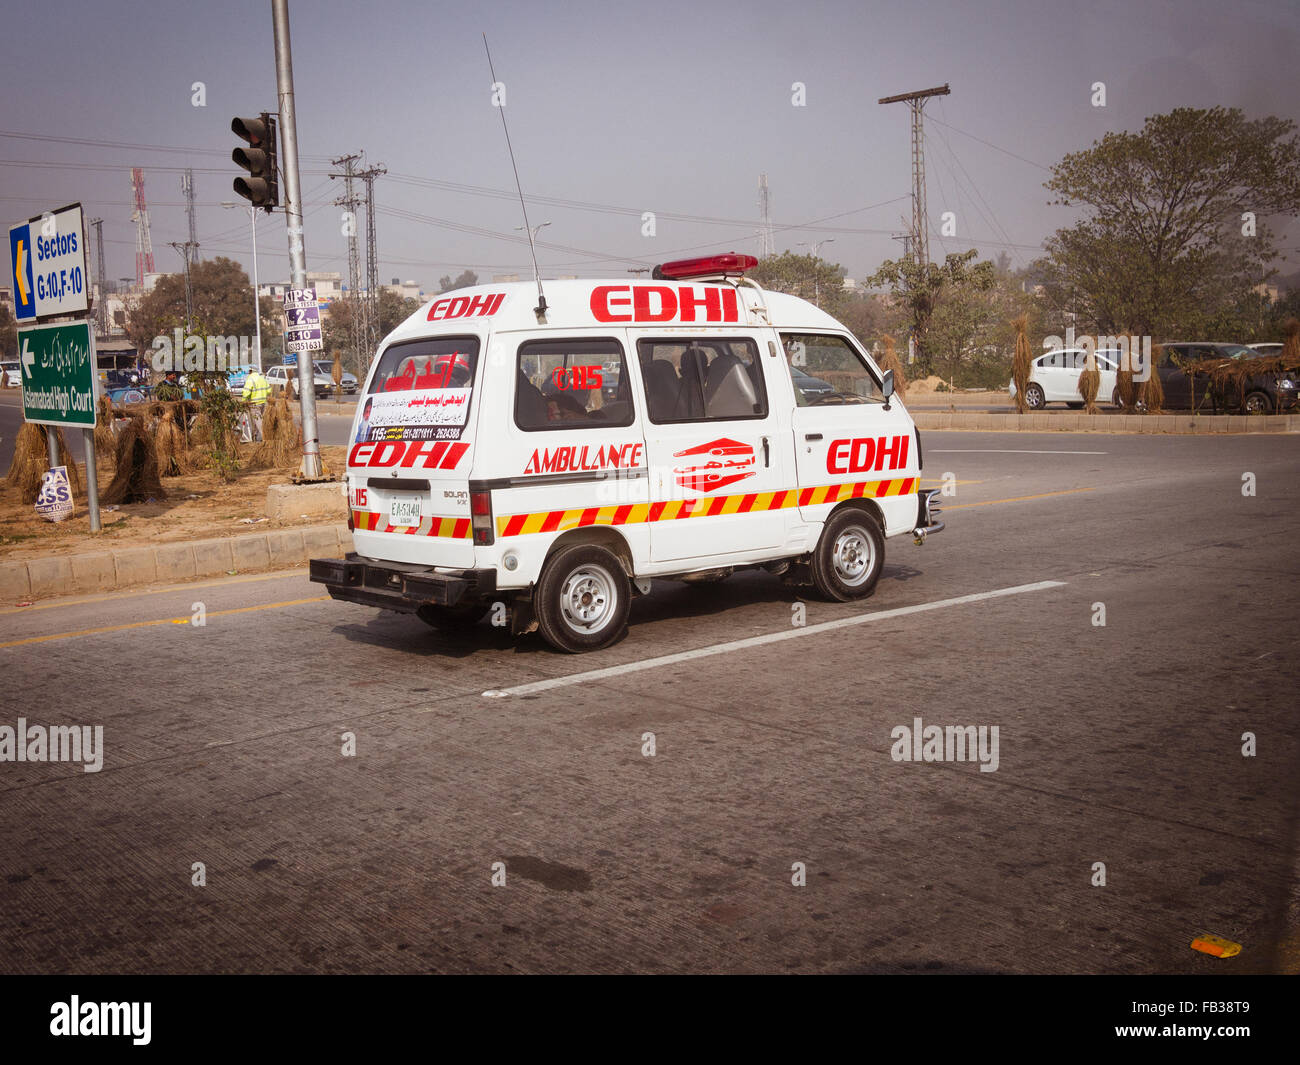 edhi ambulance pakistan - Stock Image